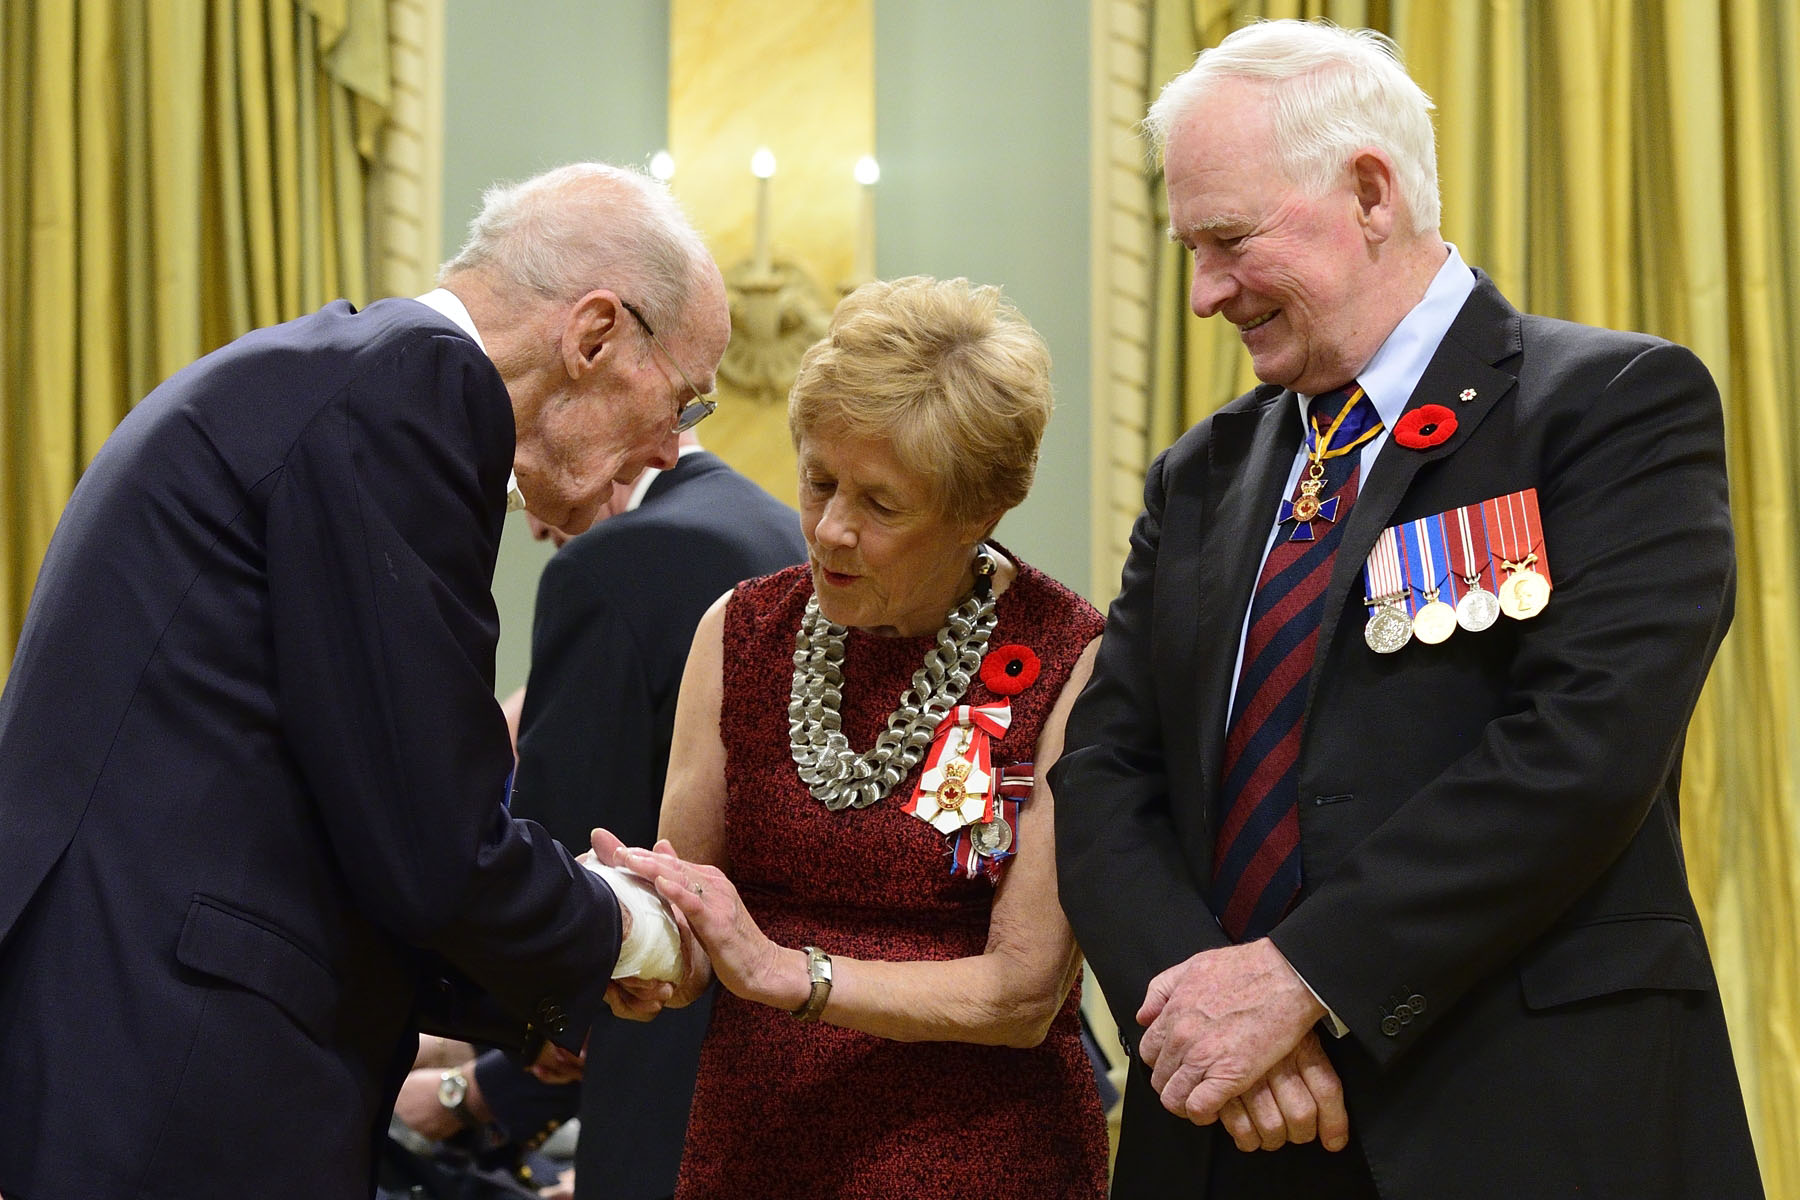 His Excellency also presented the poppy to Canadian veterans who attended the ceremony.